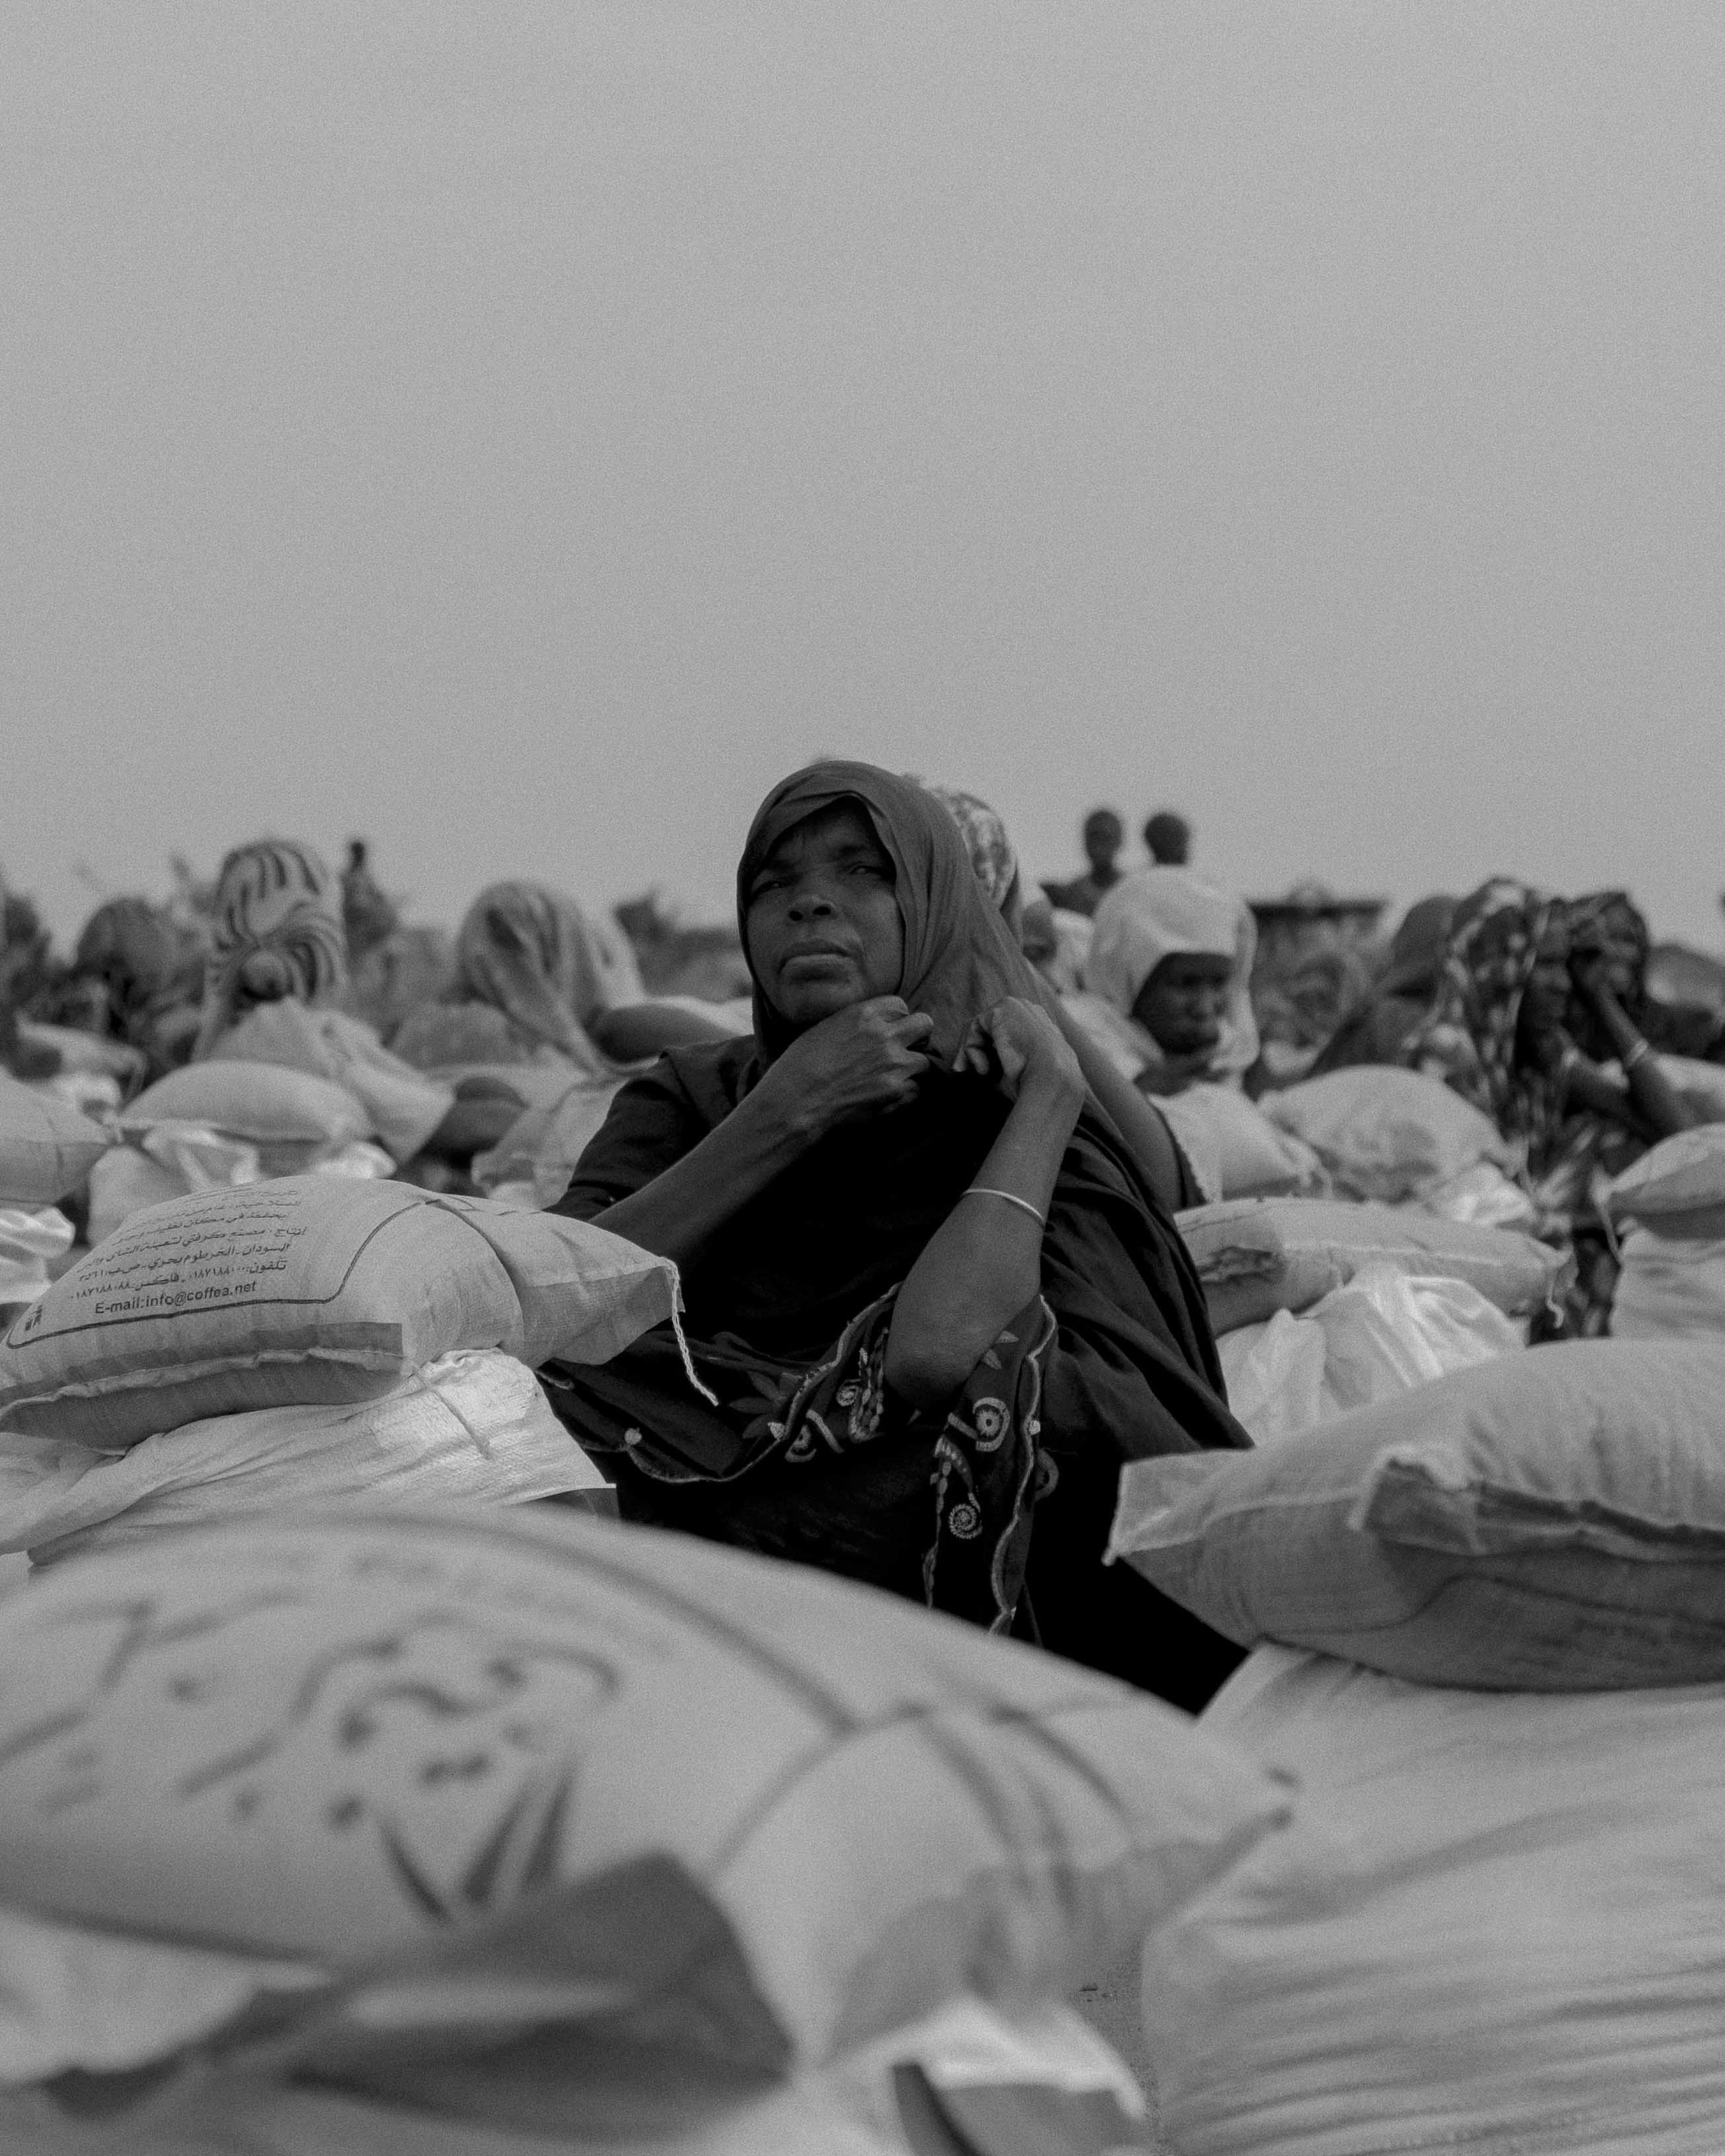 Women, displaced from war, wait to be able to leave with their food parcels in the El Serif refugee camps.